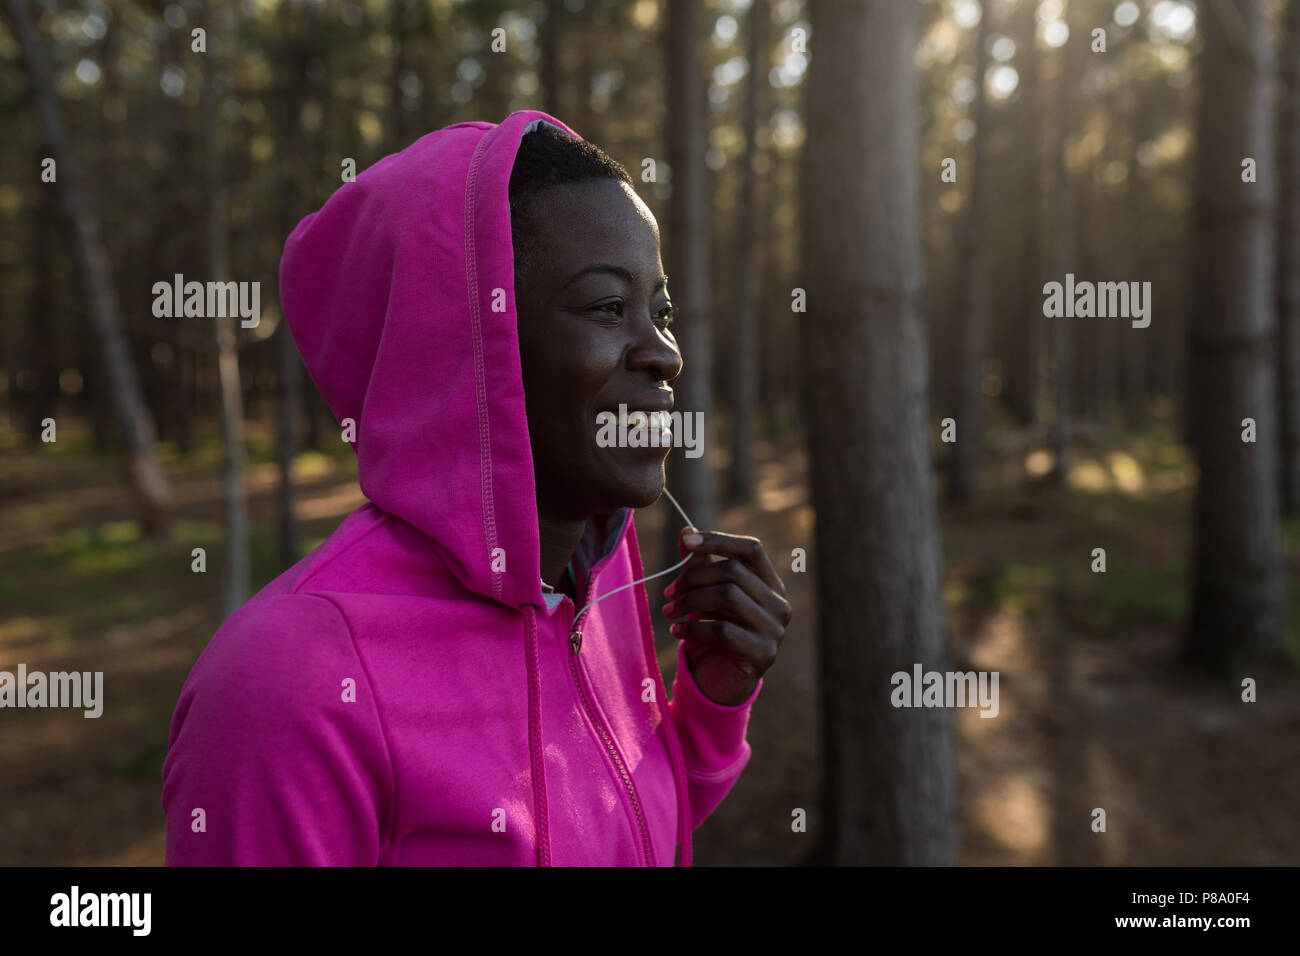 Female athlete in hooded jacket smiling in the forest - Stock Image